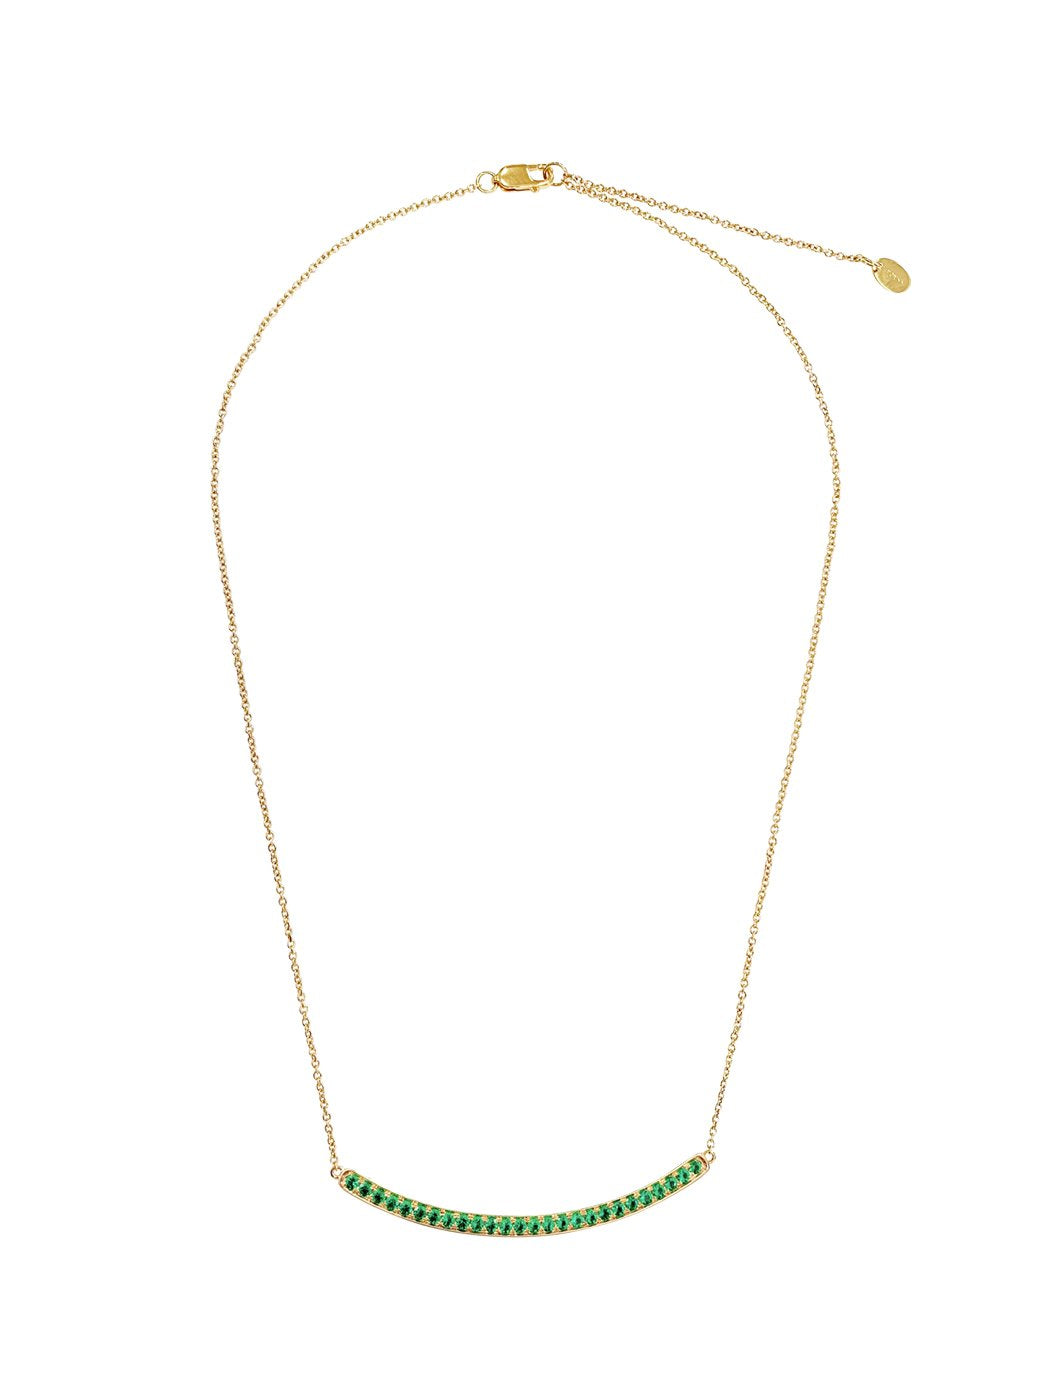 Fiorina Jewellery Arc Necklace Yellow Gold Emerald